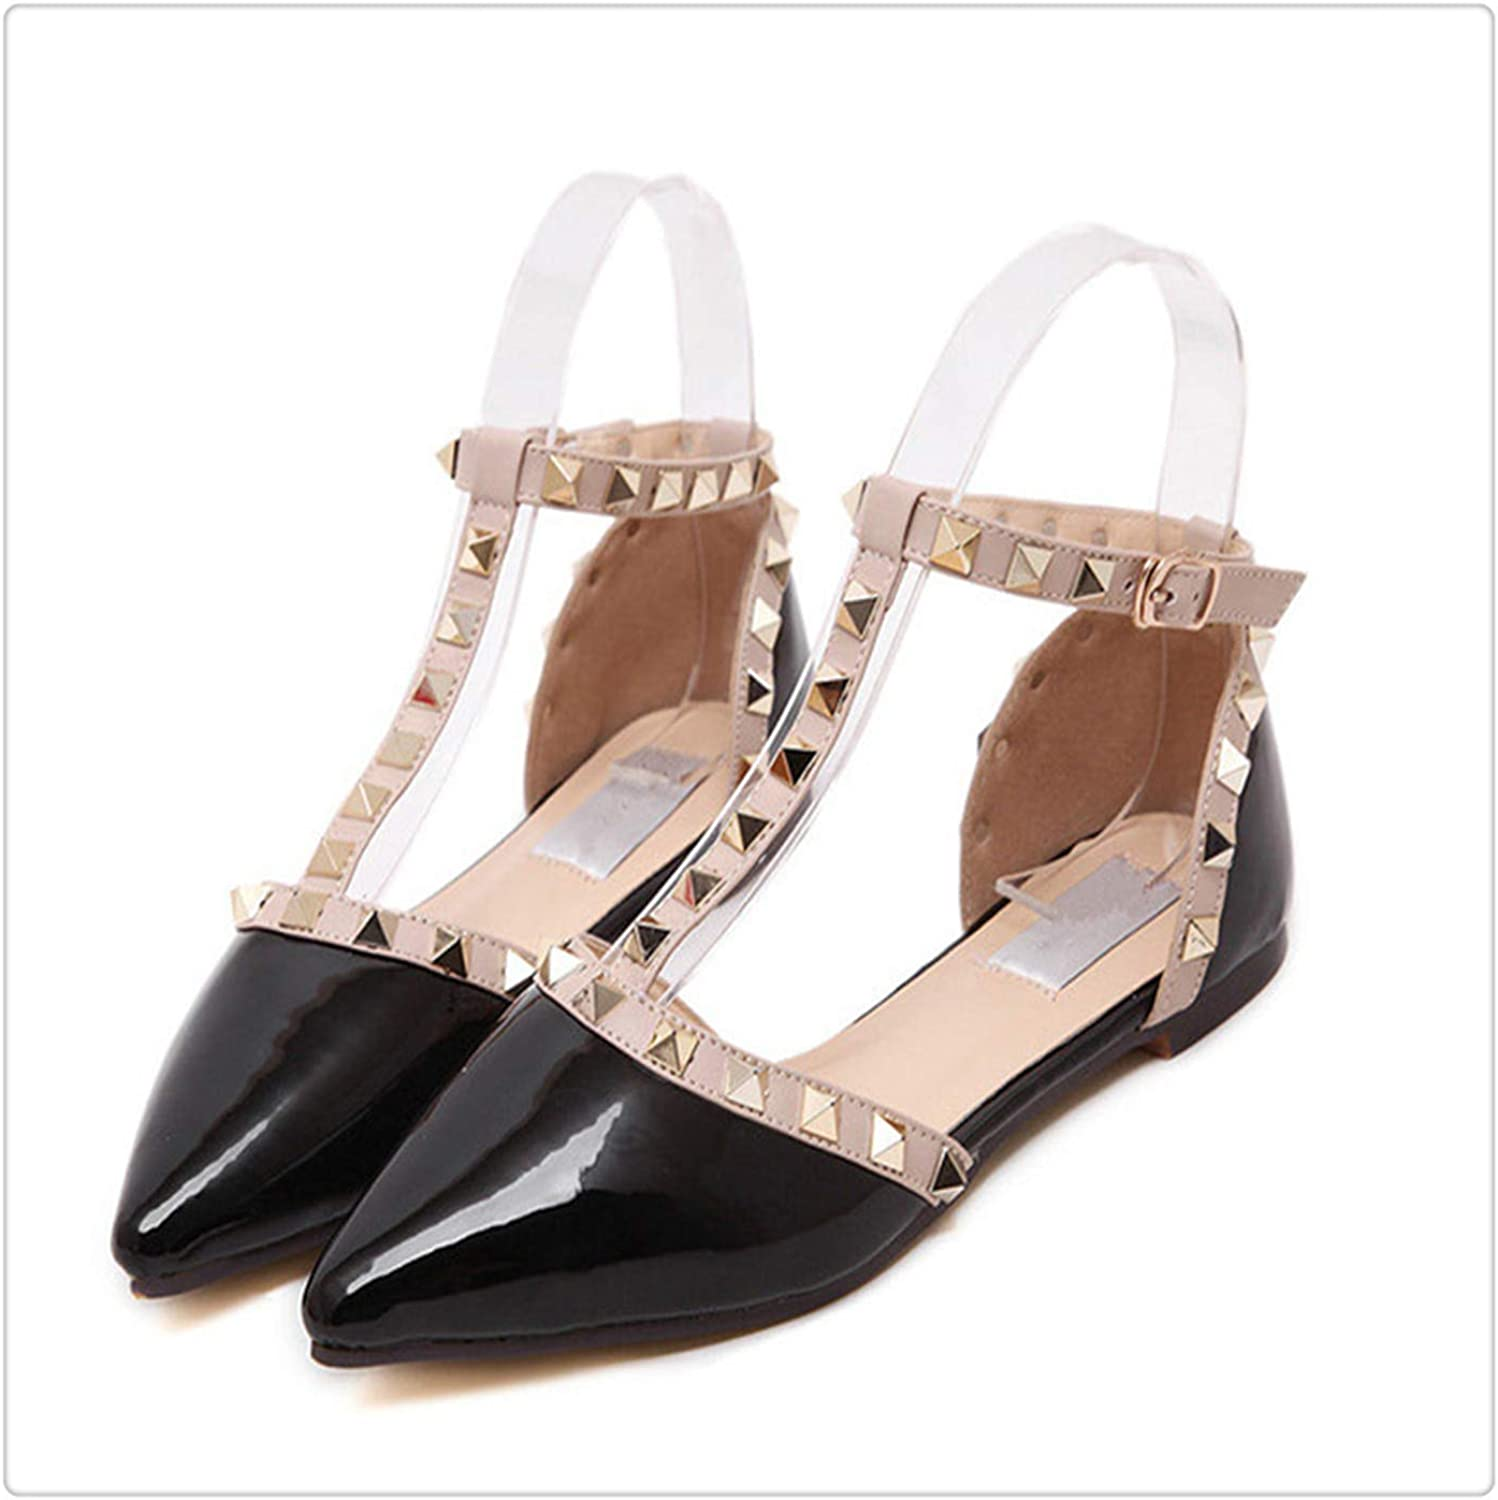 HROST& Flat Heel shoes Sexy Pointed Flats Buckle Belt Flat Sandals Women's shoes